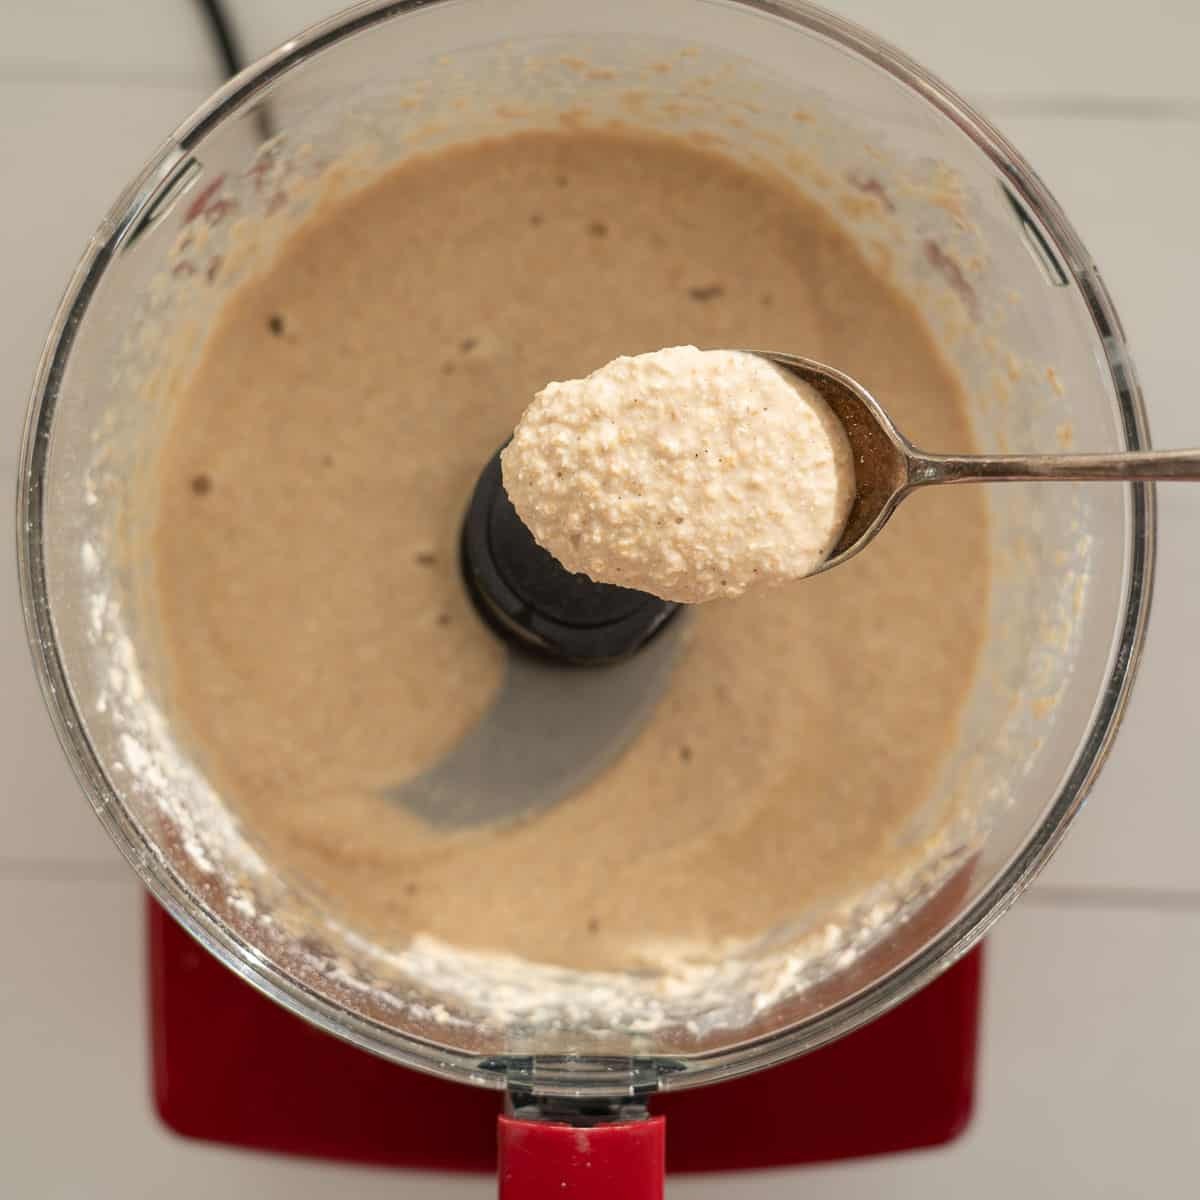 A spoonful of oat pancake batter being held above a food processor.